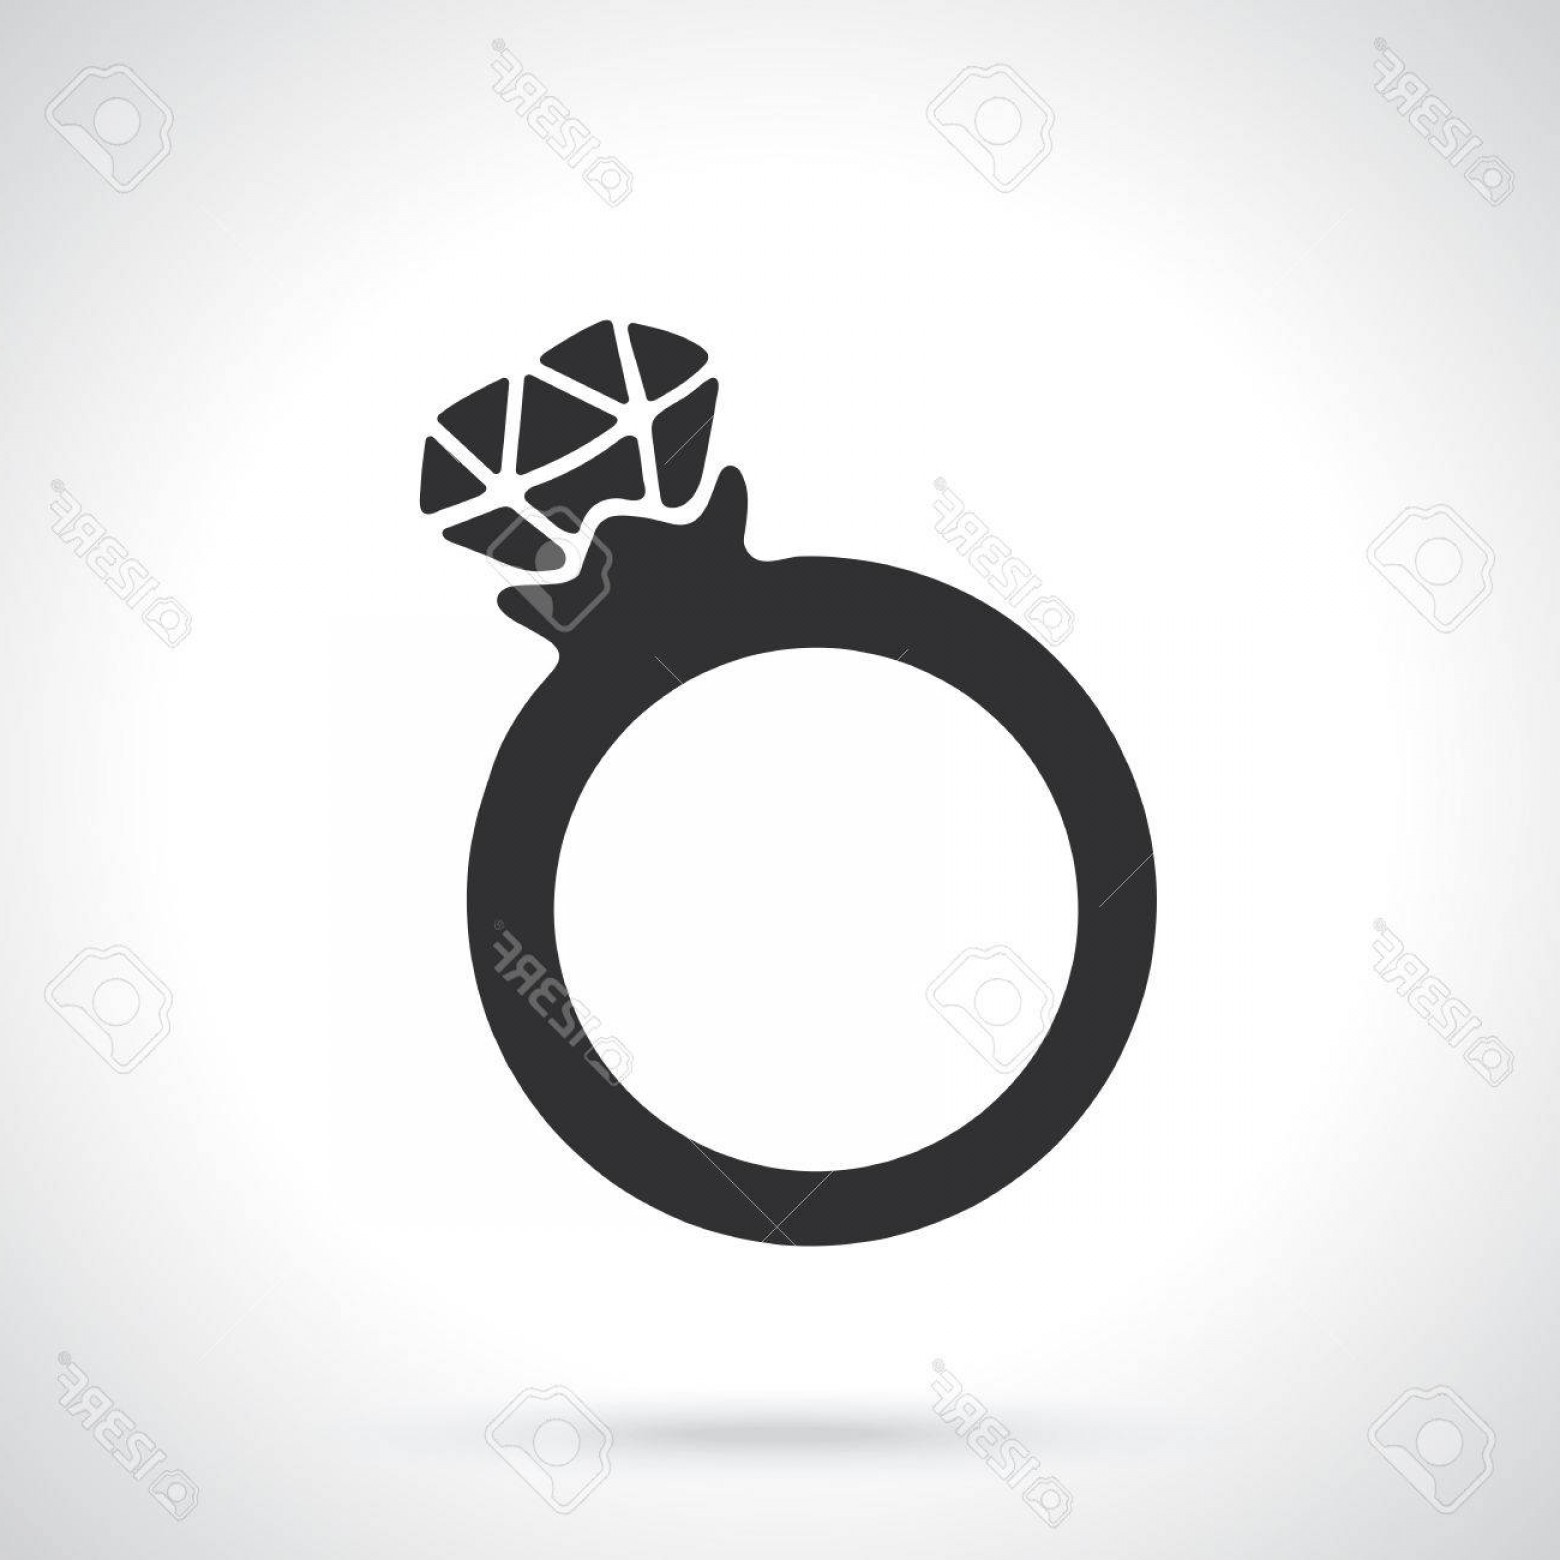 Hand With Ring Silhouette Vector: Photostock Vector Vector Illustration Silhouette Of Ring With A Diamond Template Or Pattern Decoration For Greeting Ca